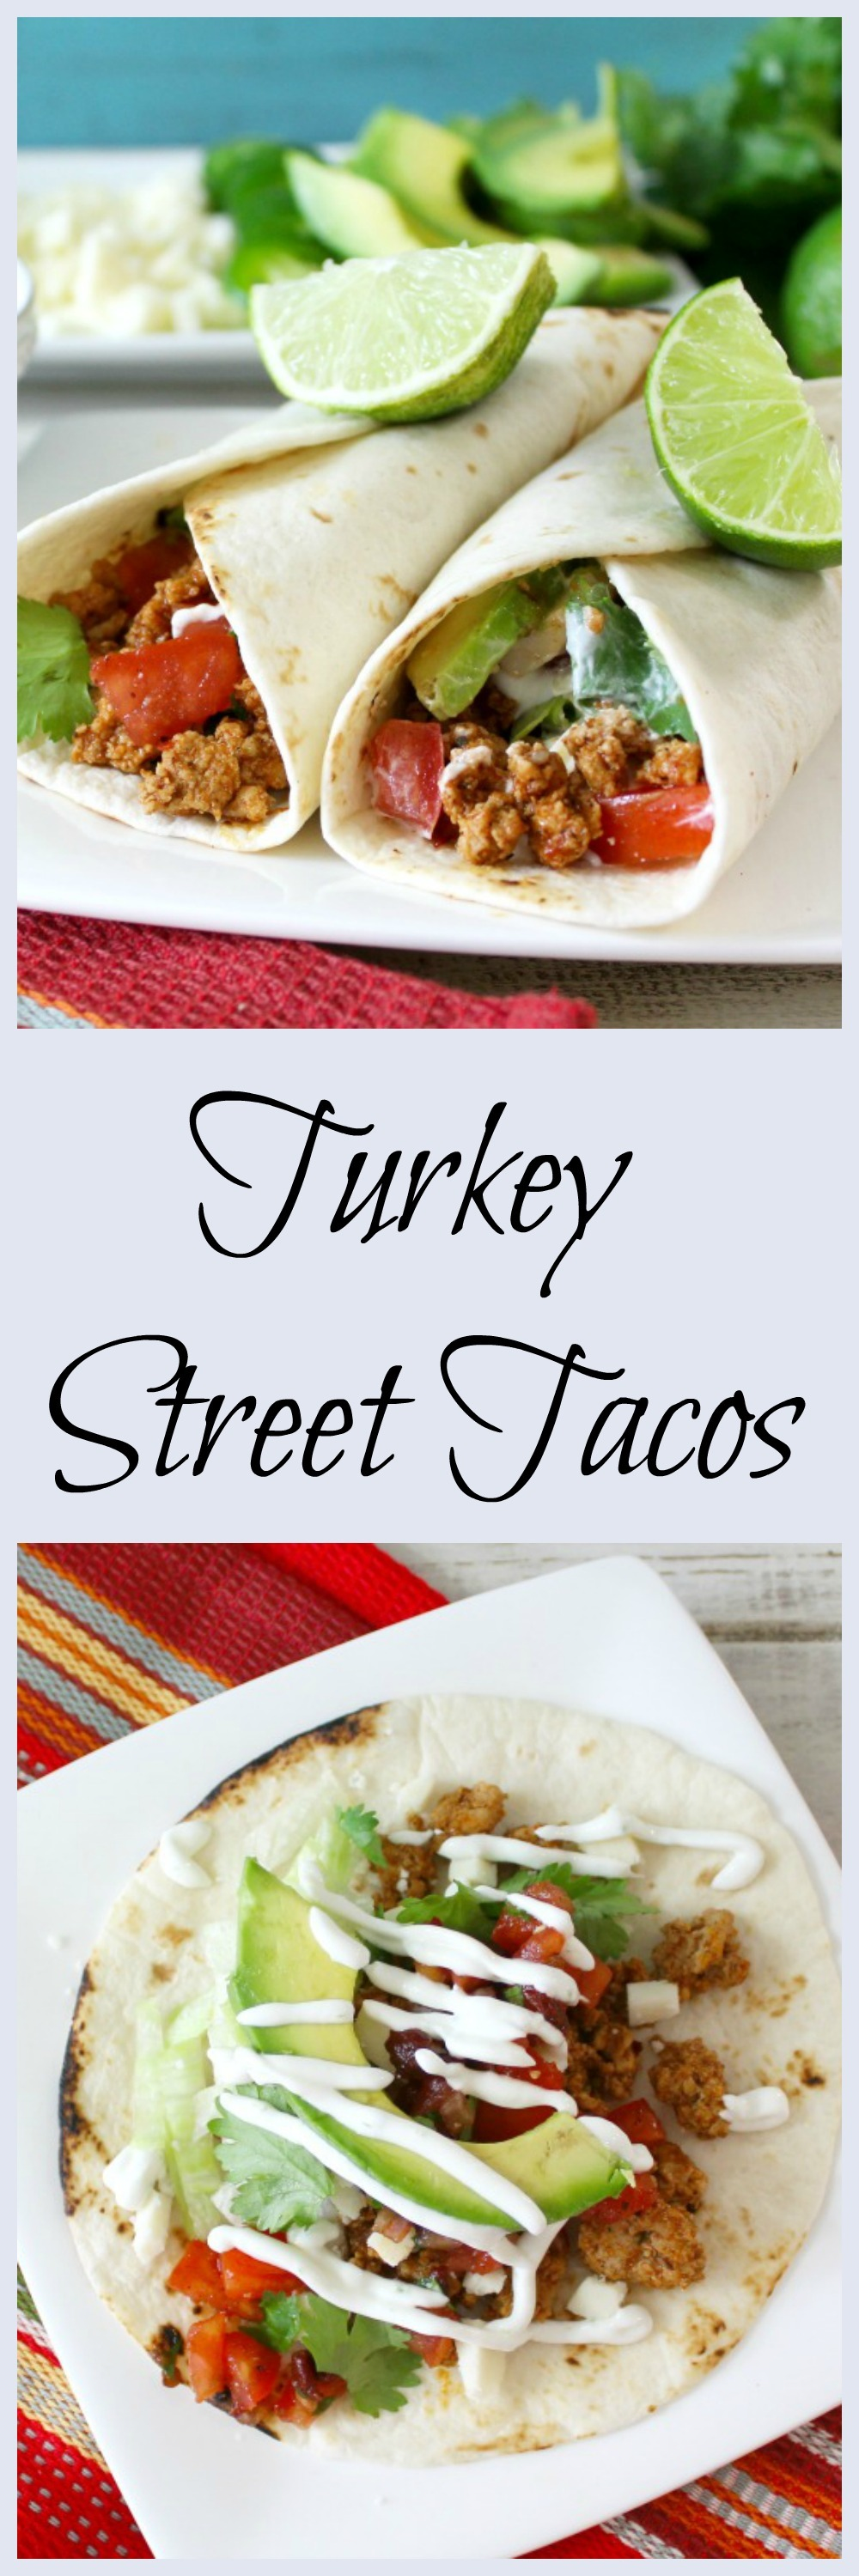 Turkey Street Tacos #TurkeyTuesday